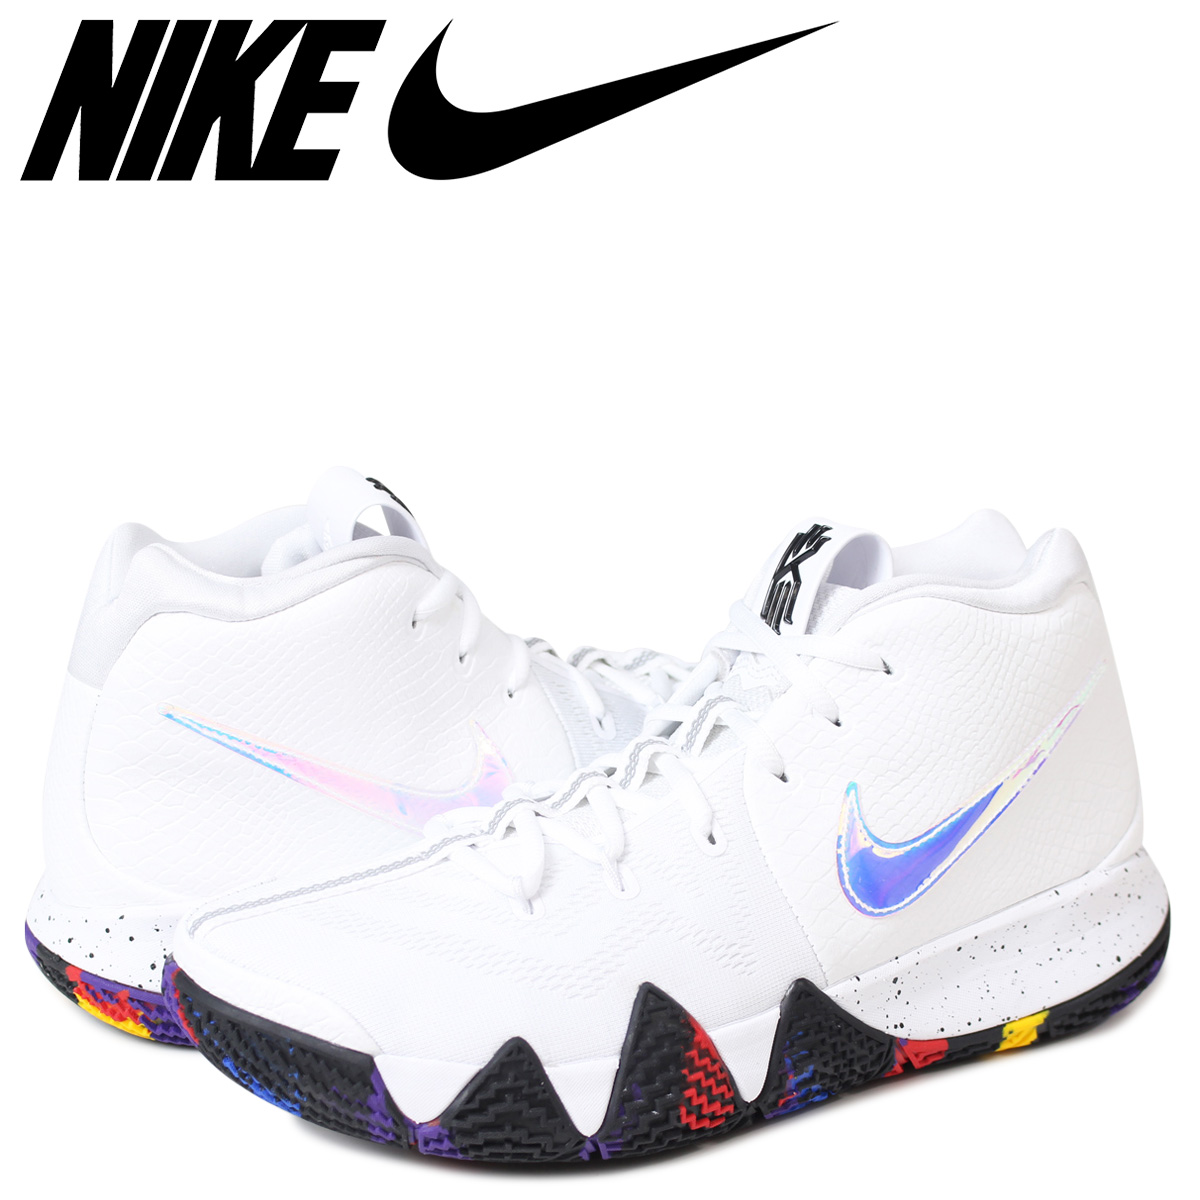 NIKE KYRIE 4 EP MARCH MADNESS Nike chi Lee 4 sneakers men 943,807 104 white